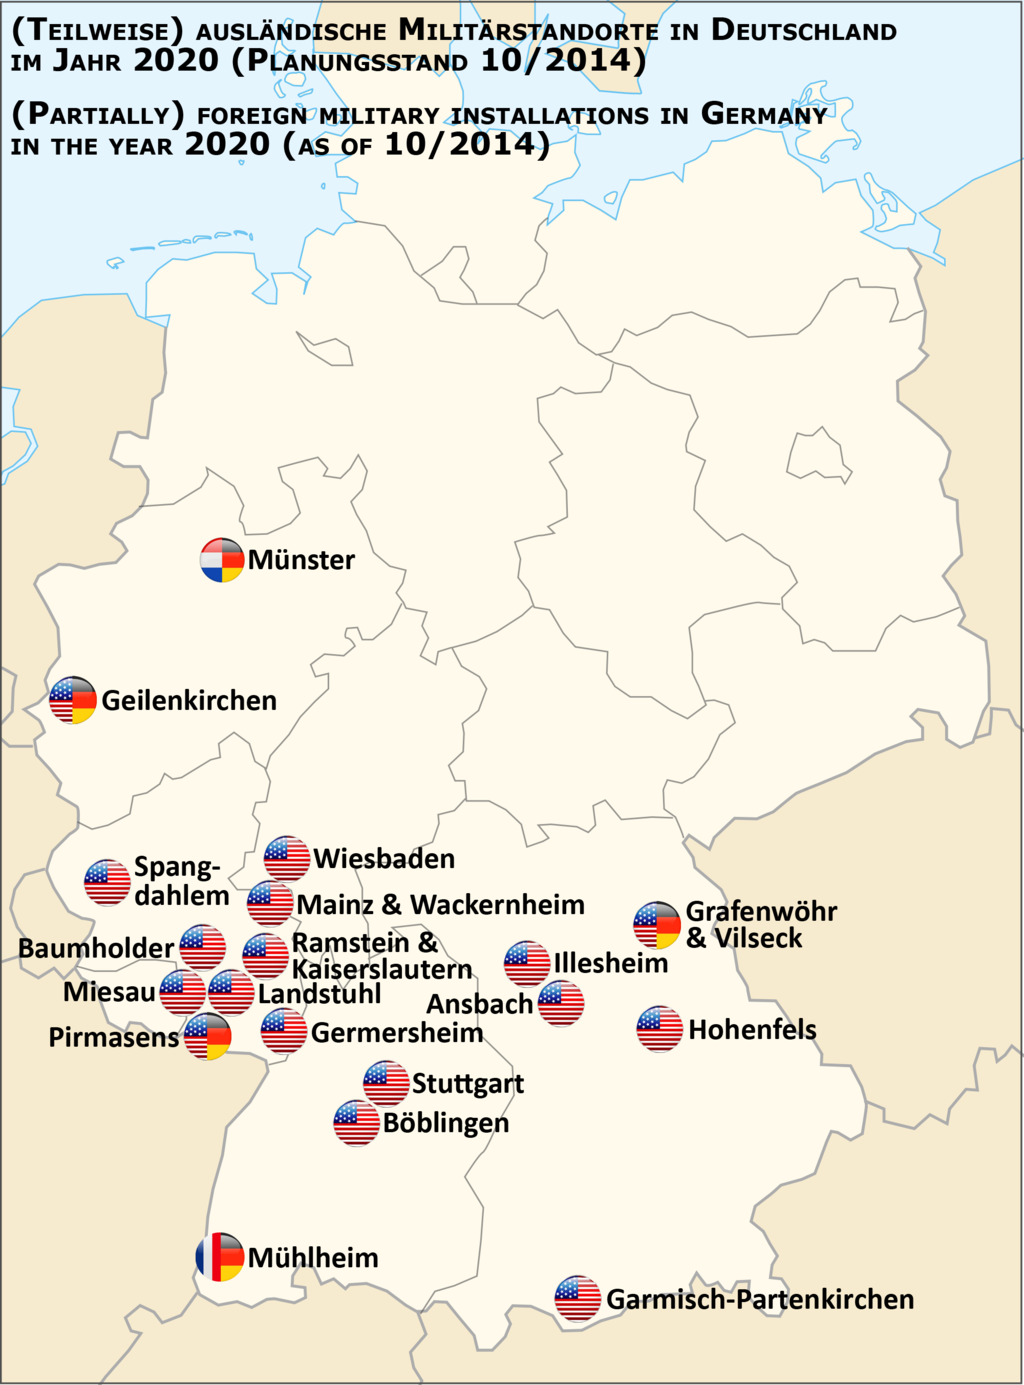 Is Germany an occupied country? - Quora